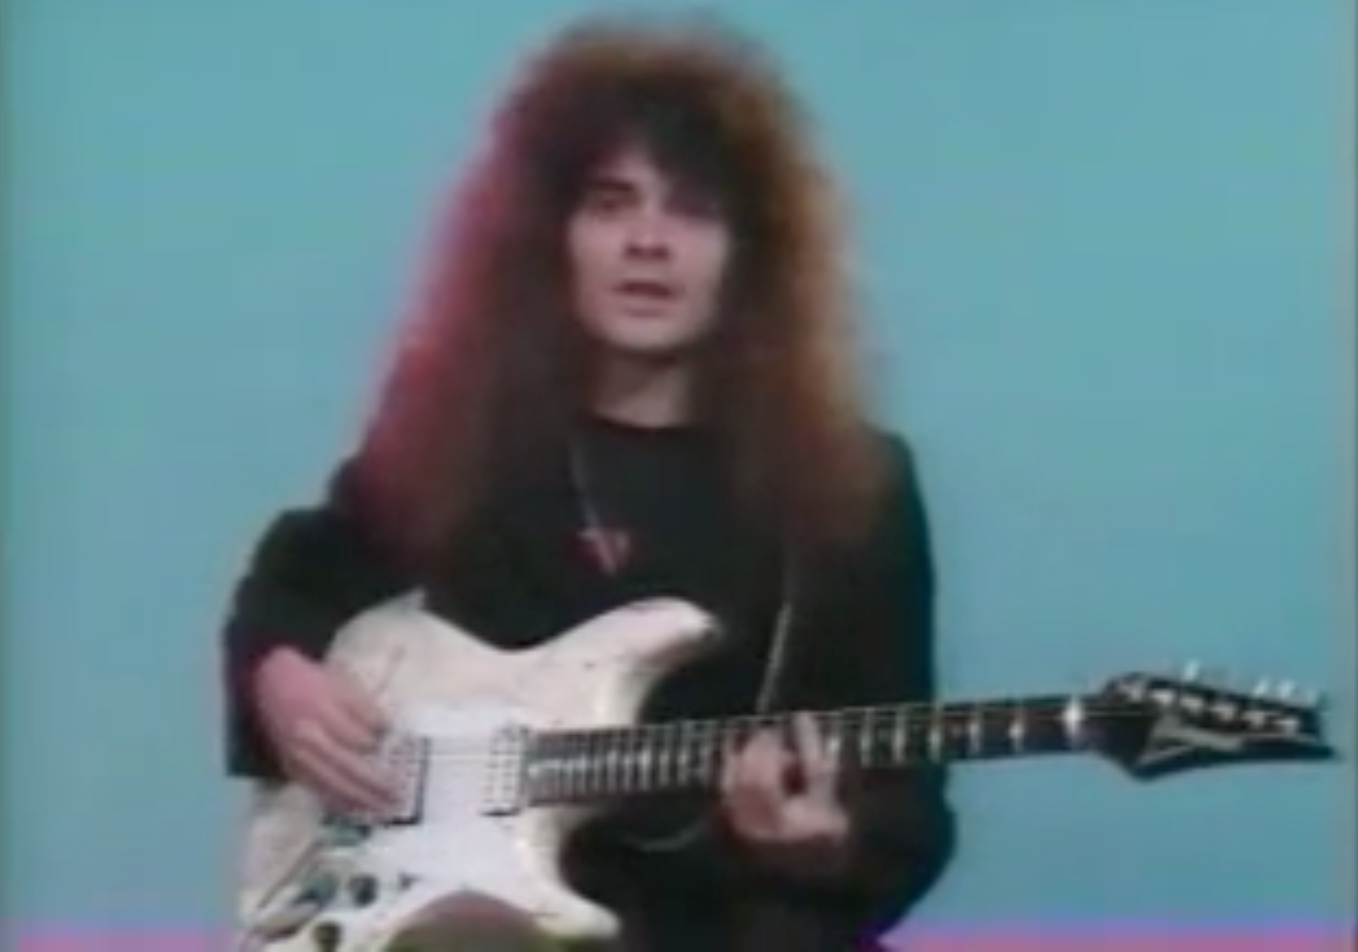 vinnie moore speed accuracy and articulation guitar pro